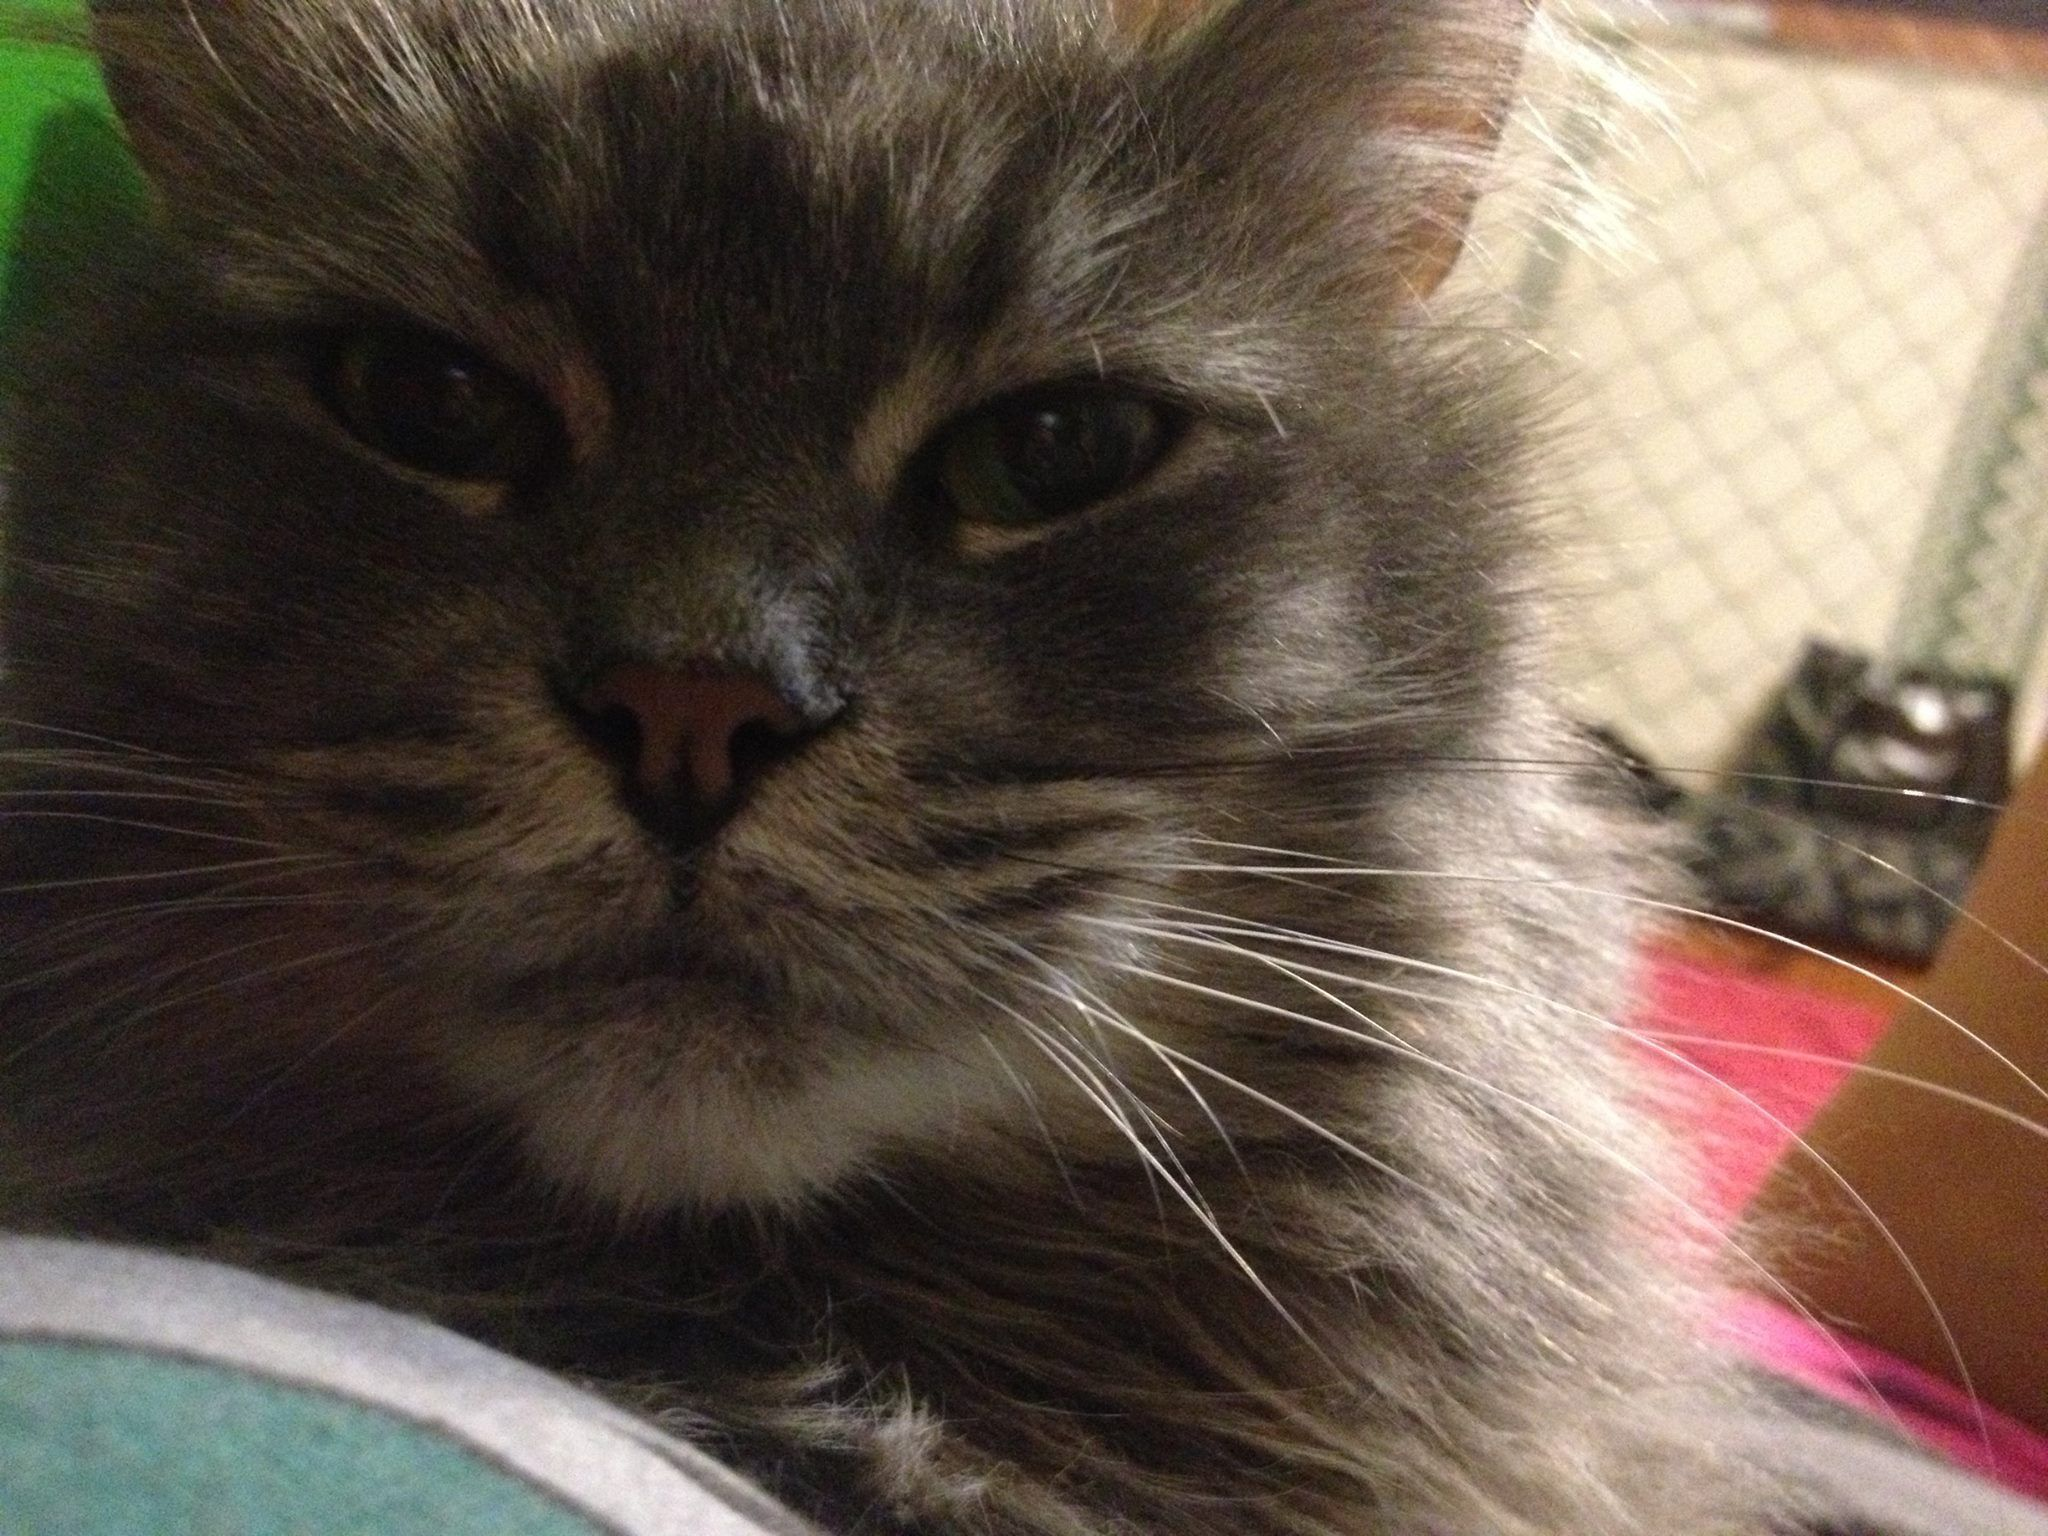 Lost 1yr old Tabby Cat with white paws Toshi tkaratogmail